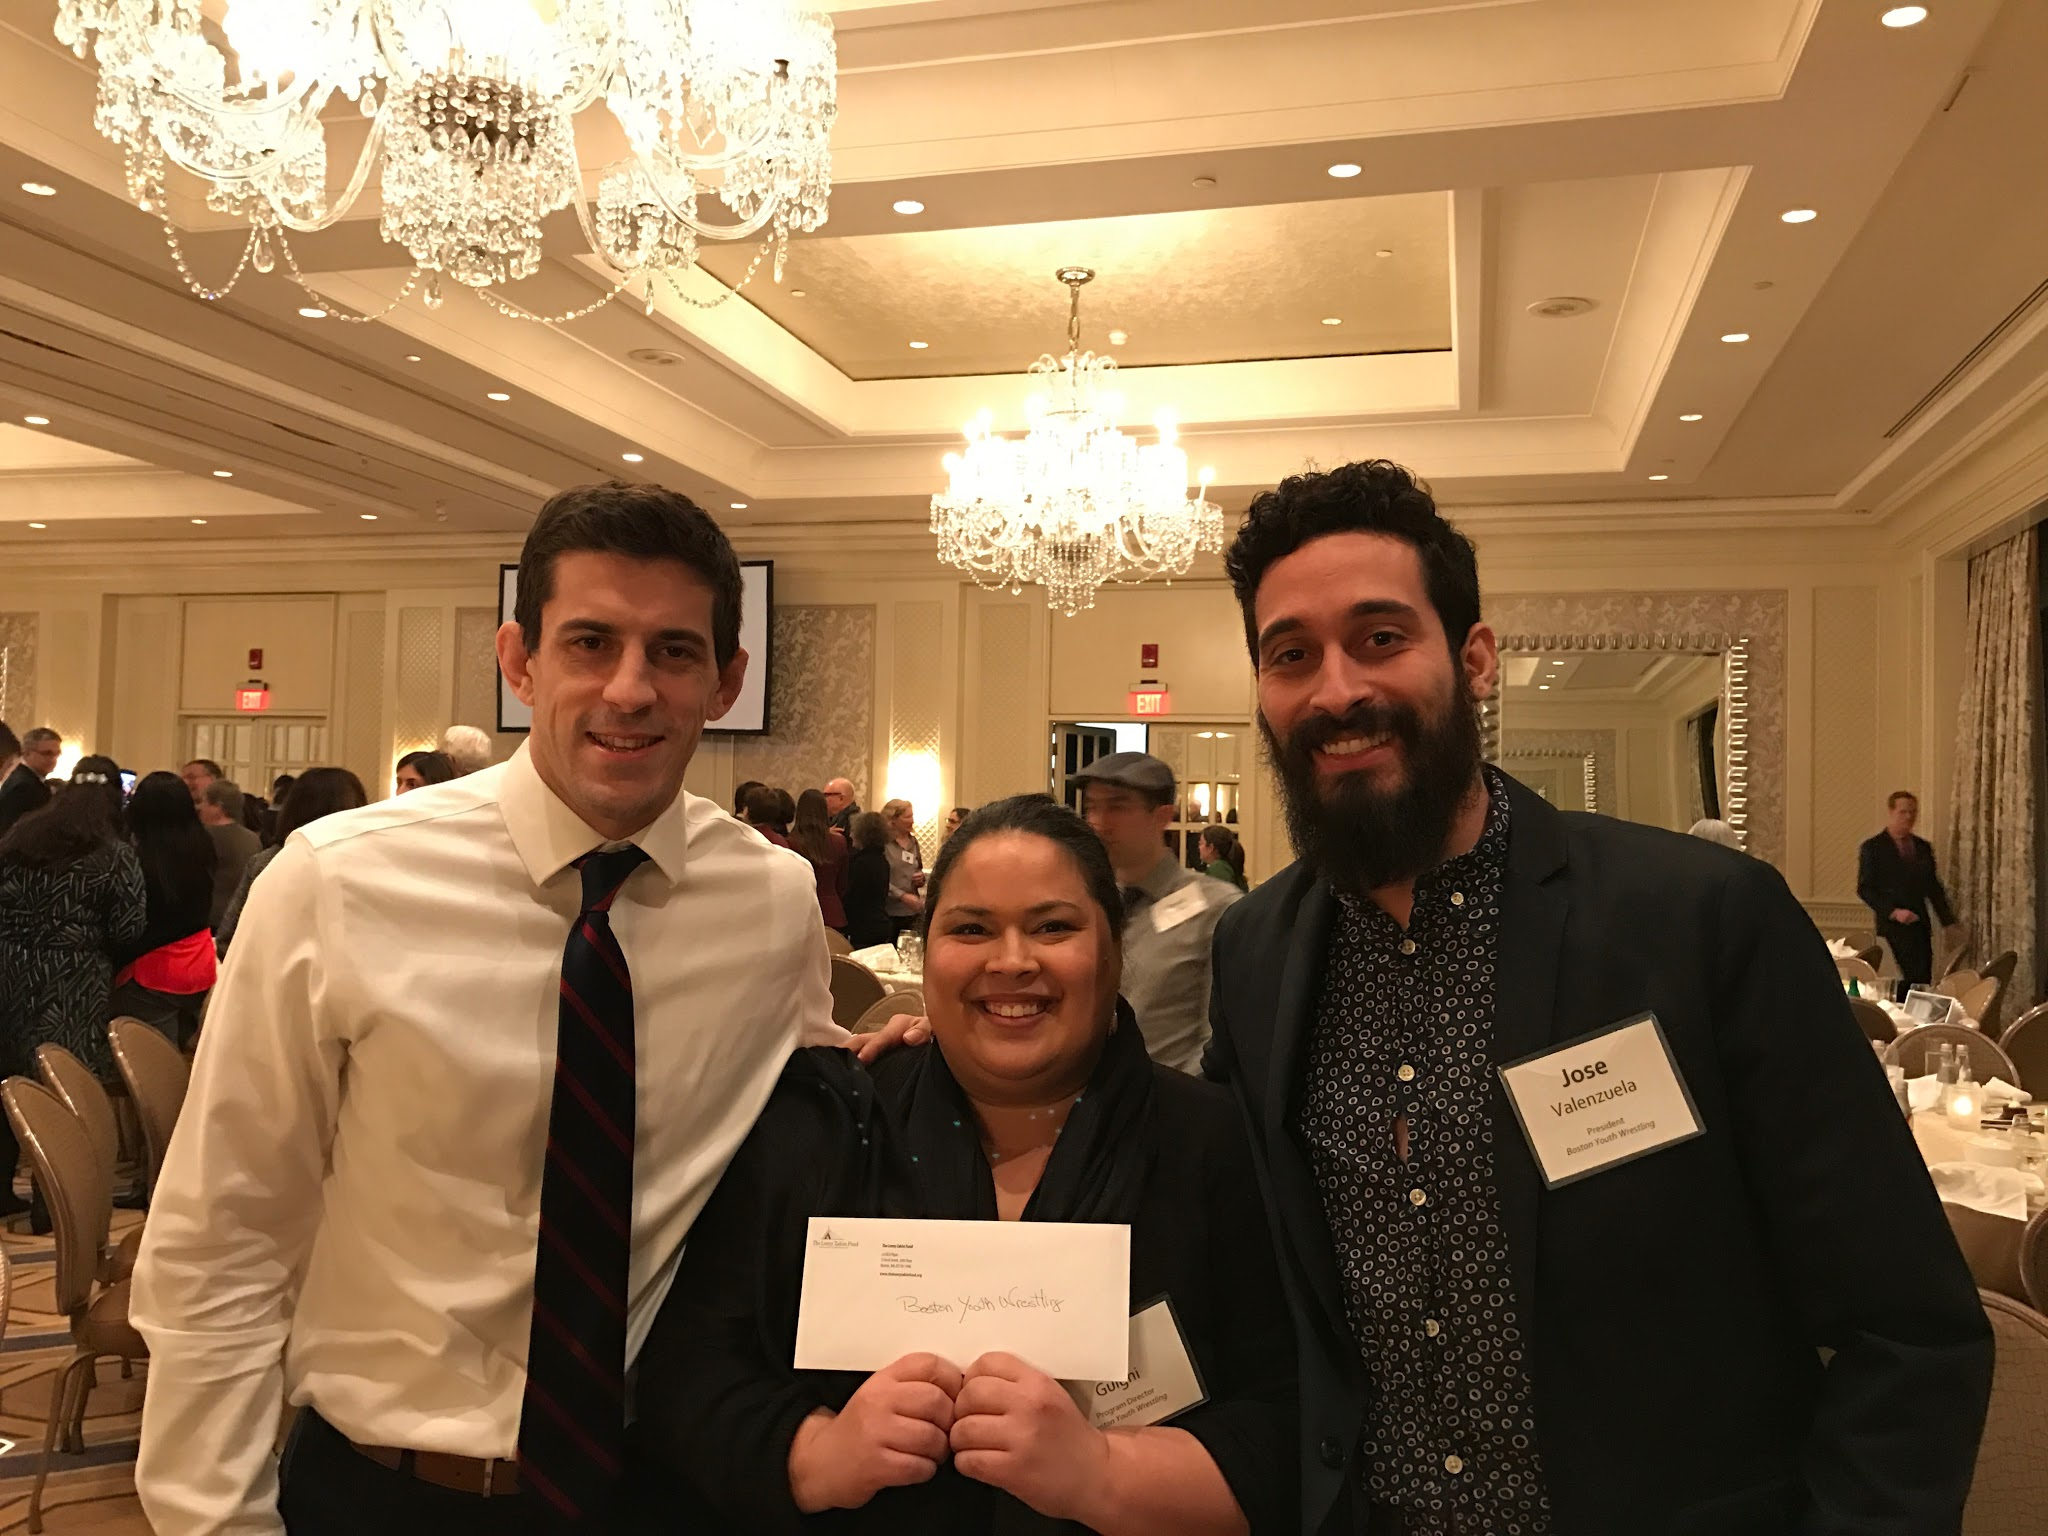 BYW Board Member Nic Miragliuolo and BYW Program Director Bior Guigni alongside Founder & Director José Valenzuela received the $20,000 check from The Lenny Zakim Fund on February 6, 2017 at the Four Seasons Hotel in Boston, MA.